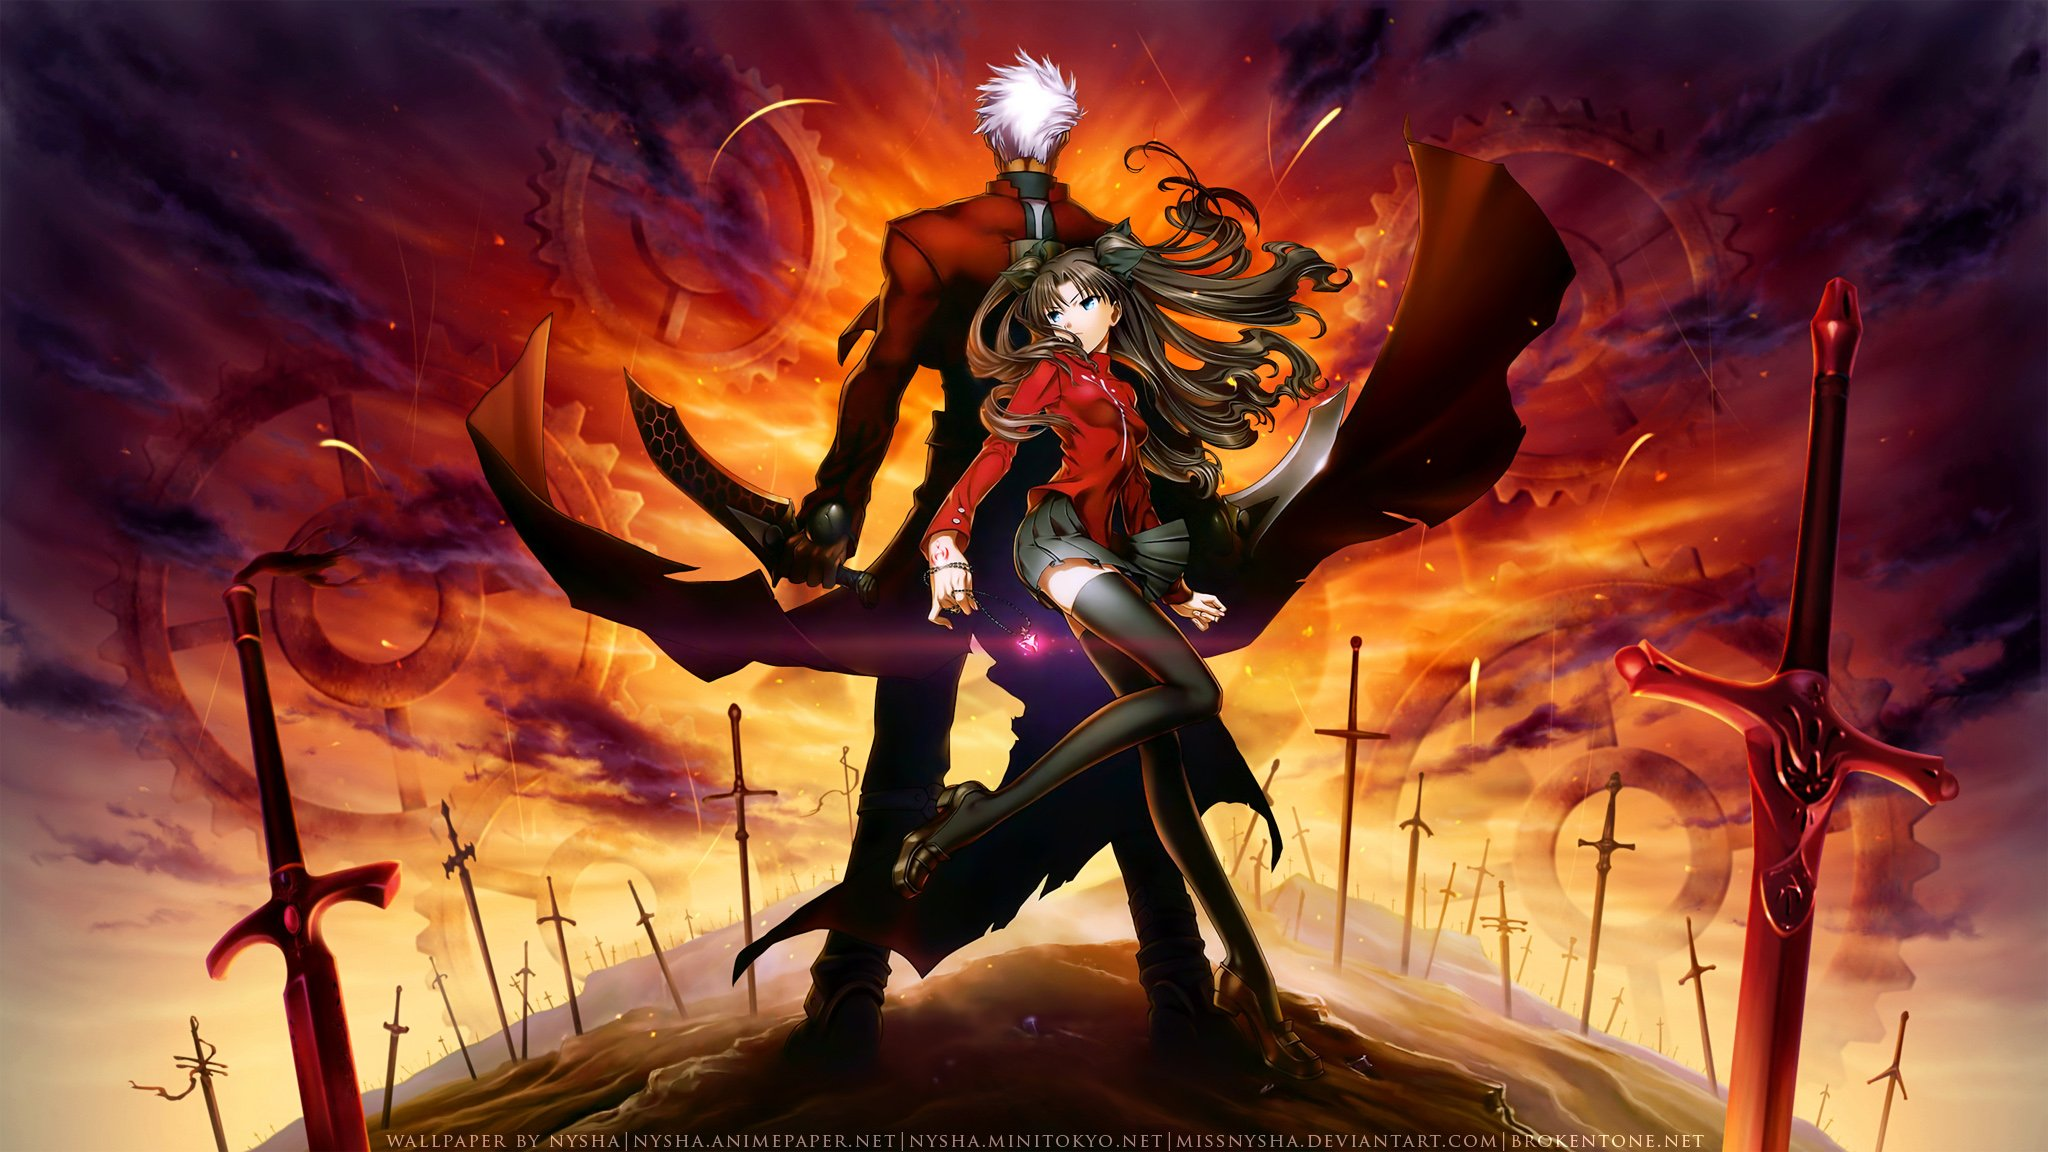 Free Download Tohsaka Rin Unlimited Blade Works Watermark Wallpaper Background 48x1152 For Your Desktop Mobile Tablet Explore 48 Unlimited Blade Works Wallpaper Fate Stay Night Saber Wallpaper Fate Stay